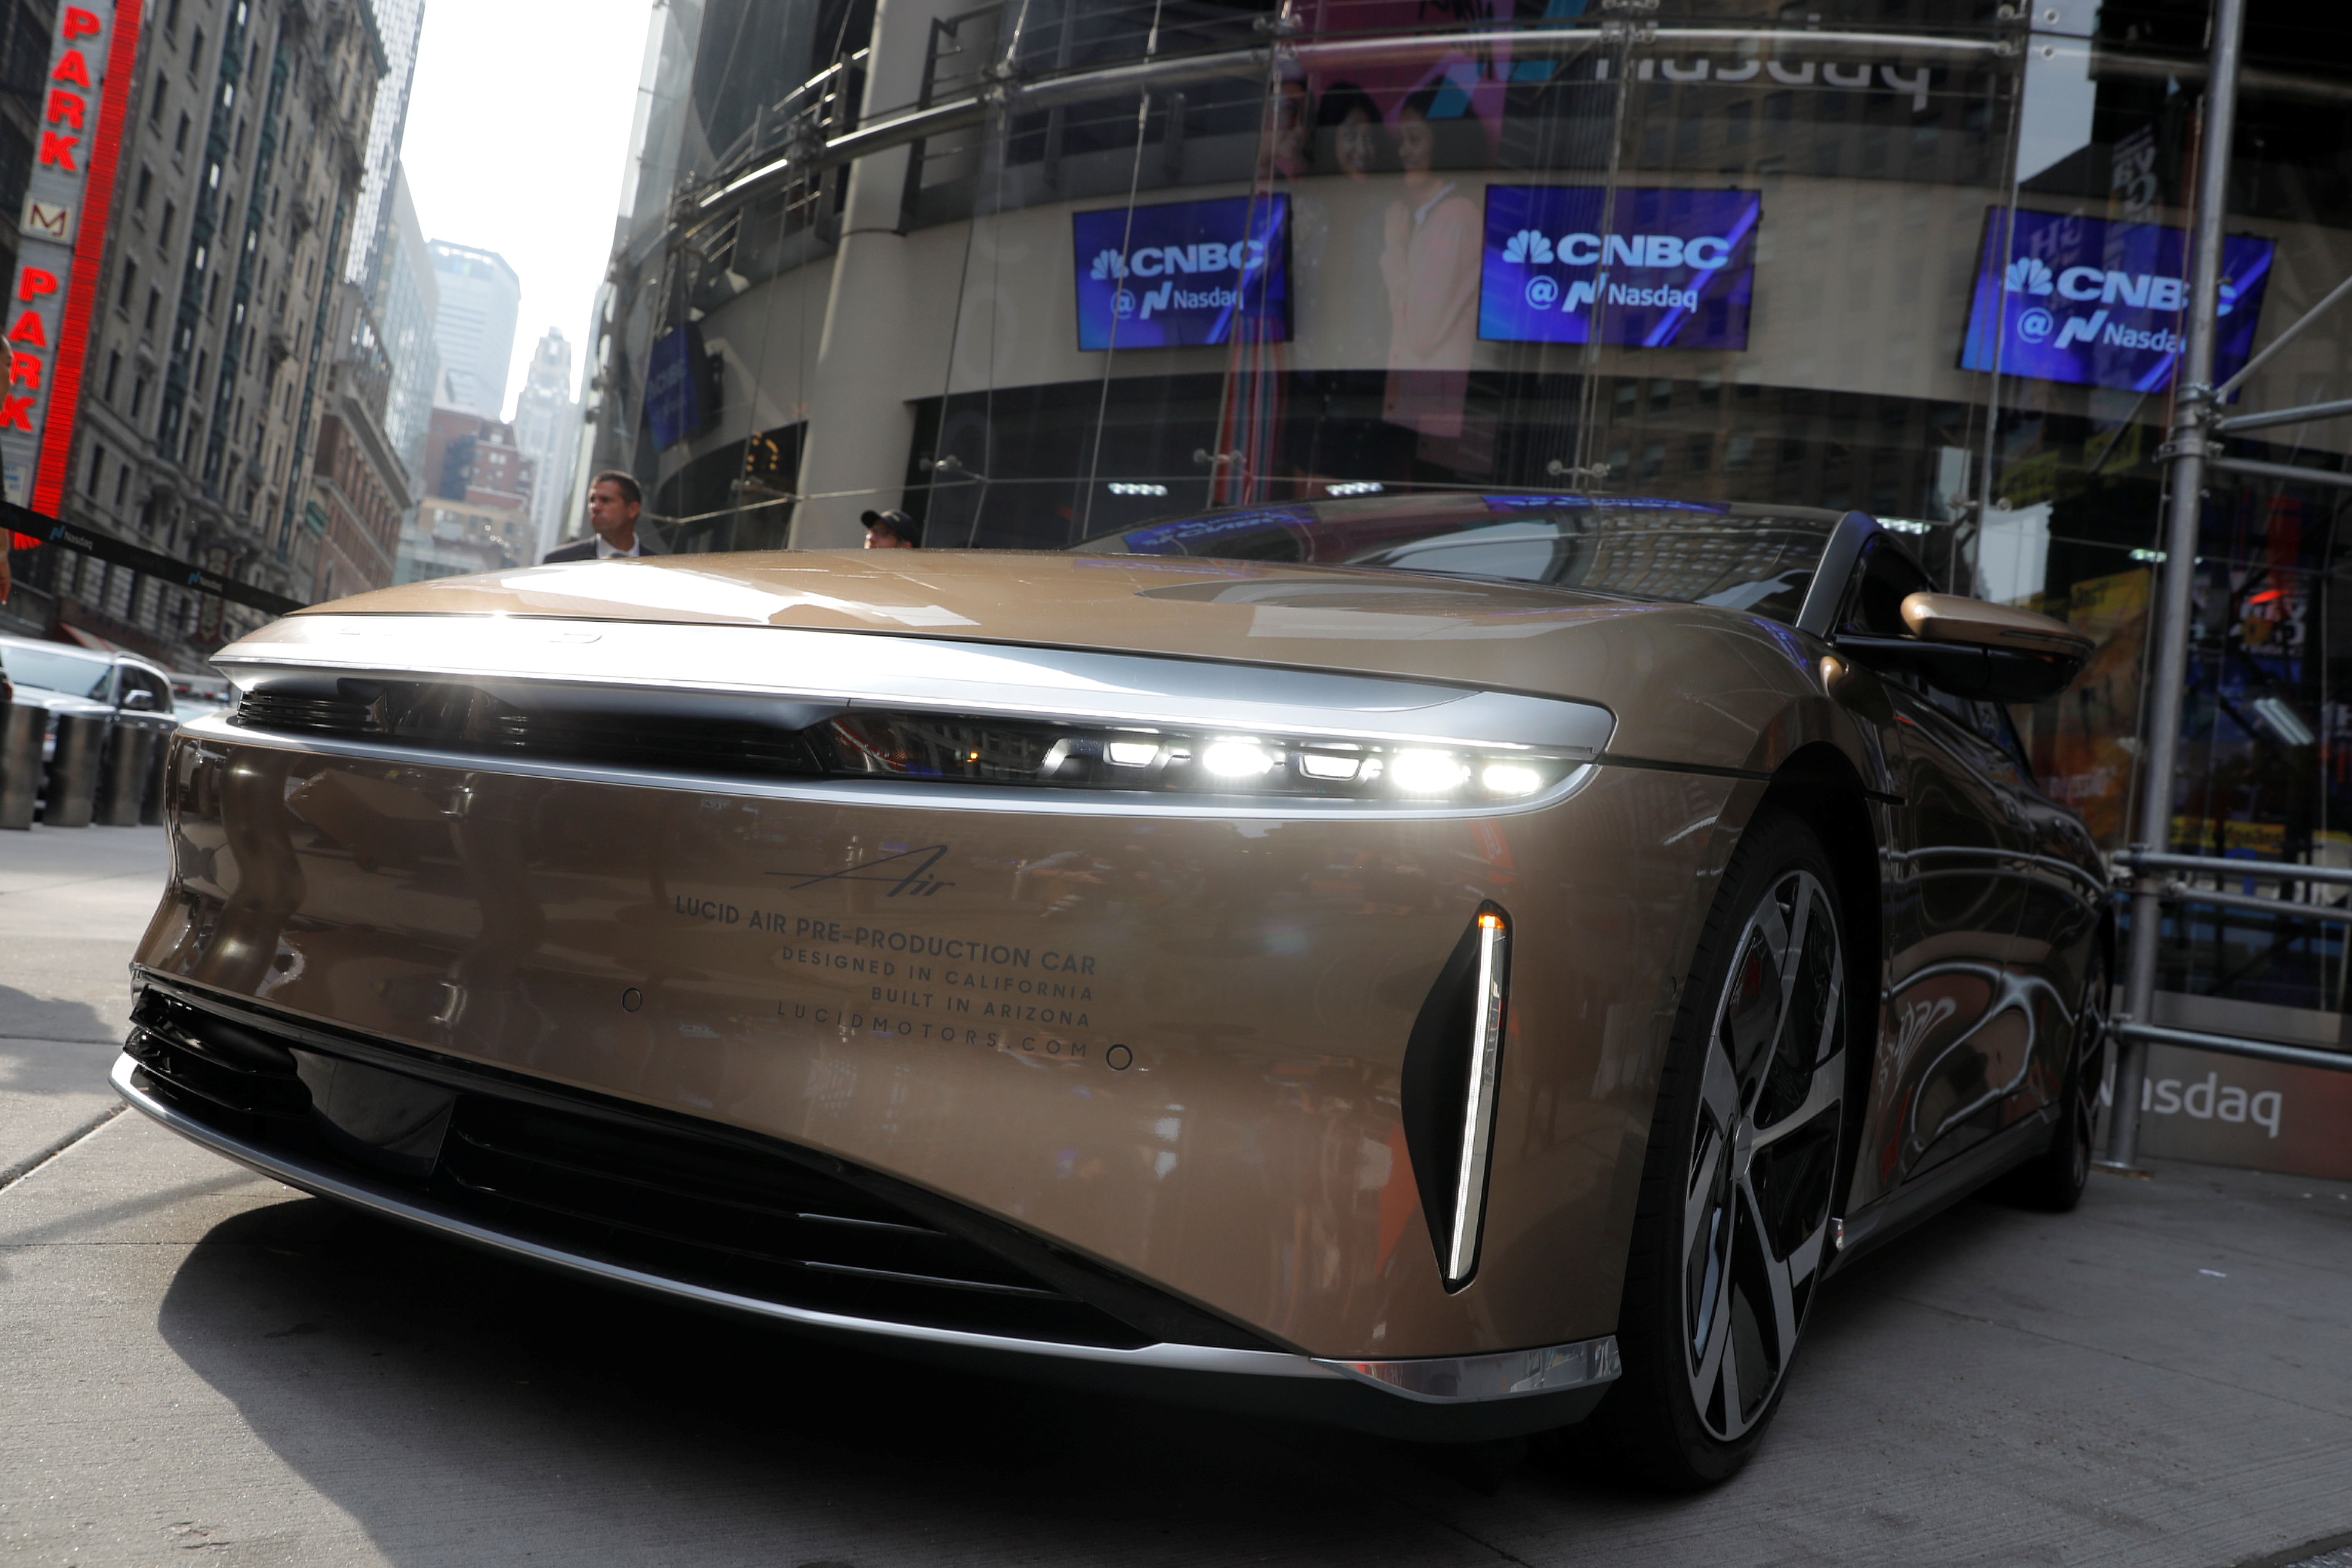 A Lucid Air Dream Edition vehicle is seen outside the Nasdaq MarketSite as Lucid Motors (Nasdaq: LCID) begins trading today on the Nasdaq stock exchange after completing its business combination with Churchill Capital Corp IV in New York City, New York, U.S., July 26, 2021. REUTERS/Andrew Kelly